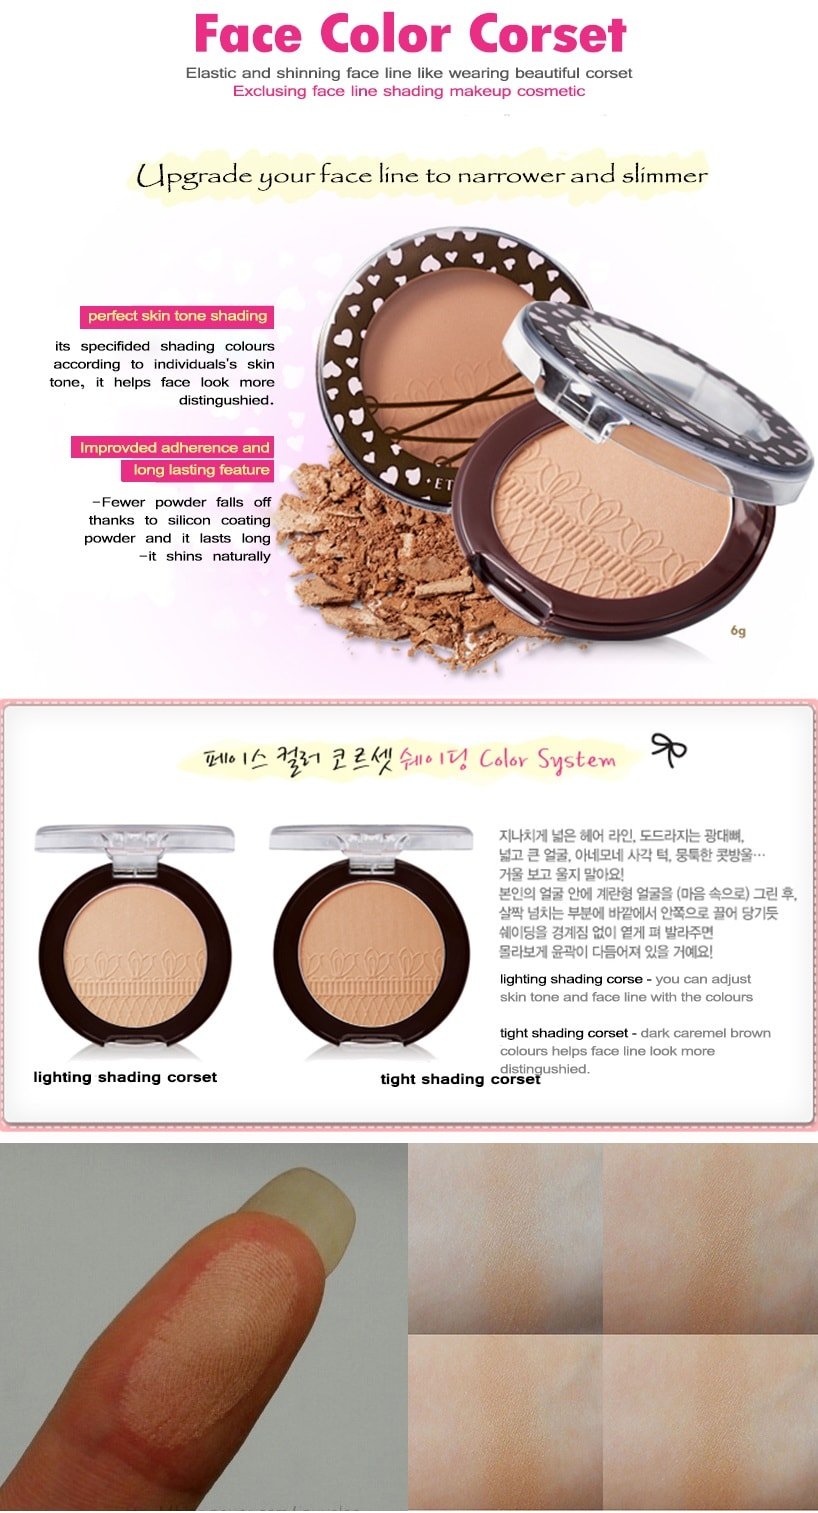 ETUDE HOUSE Face Color Corset NEW - 5 Tight